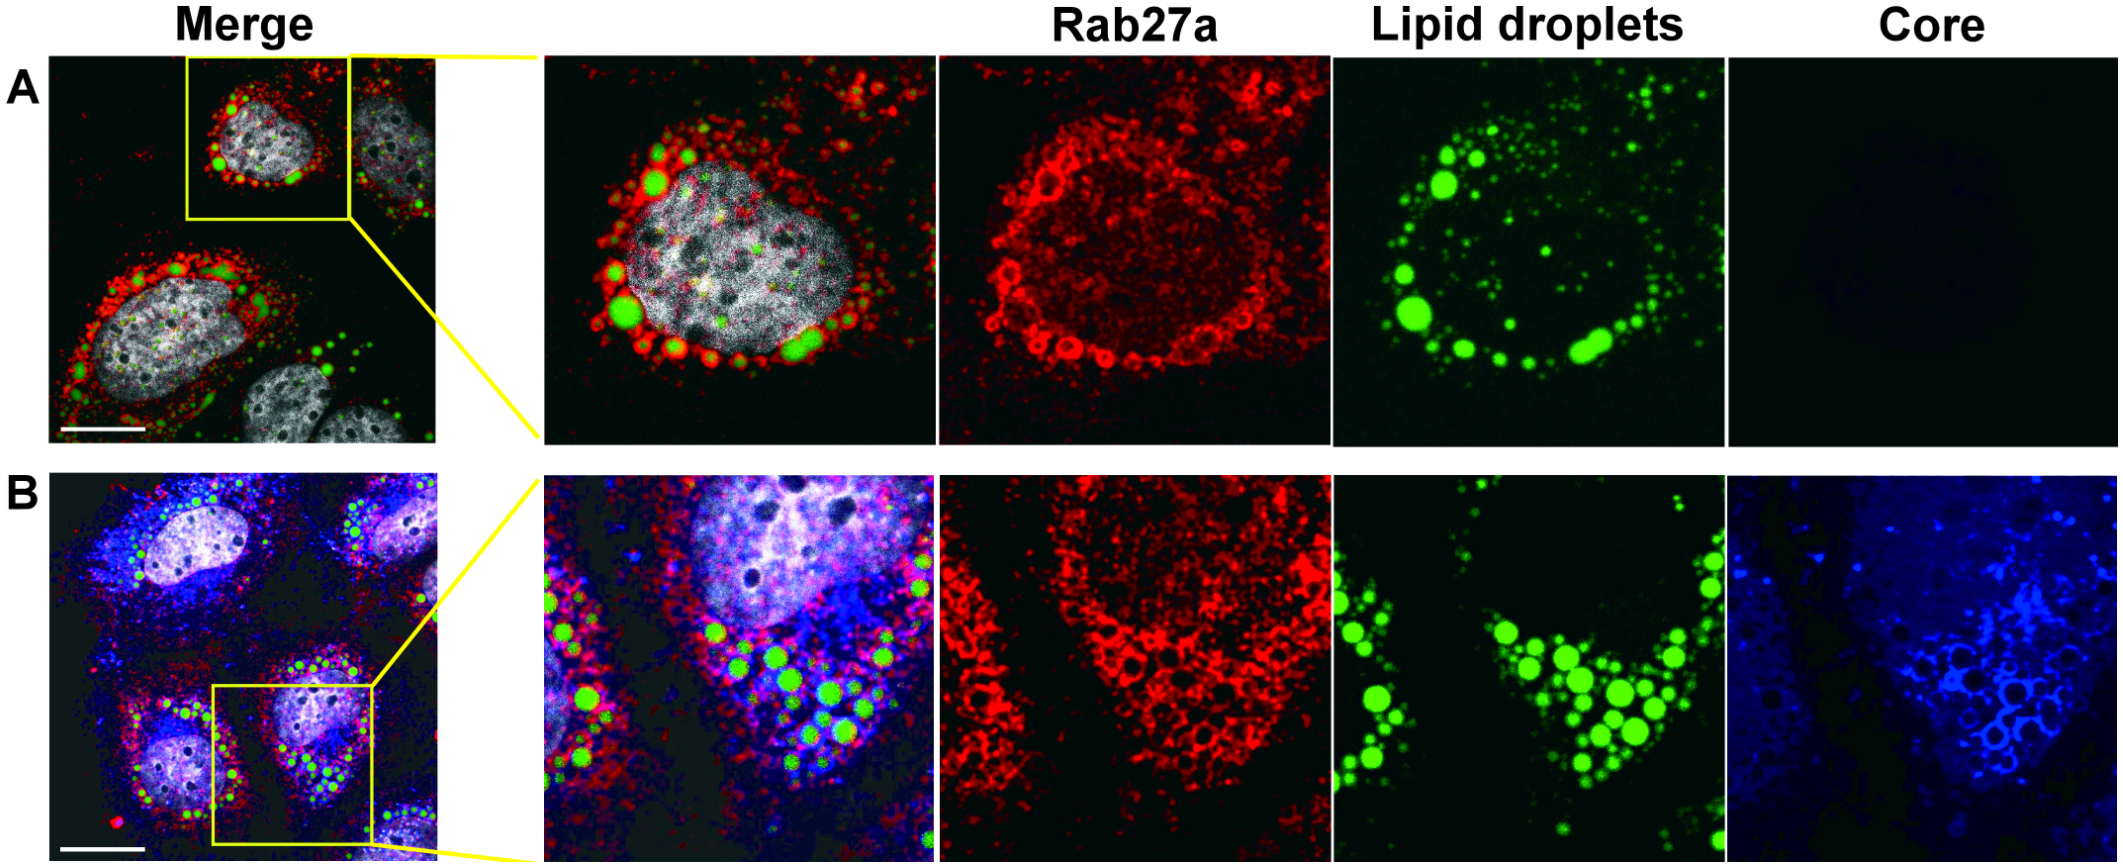 Subcellular localization of Rab27a.